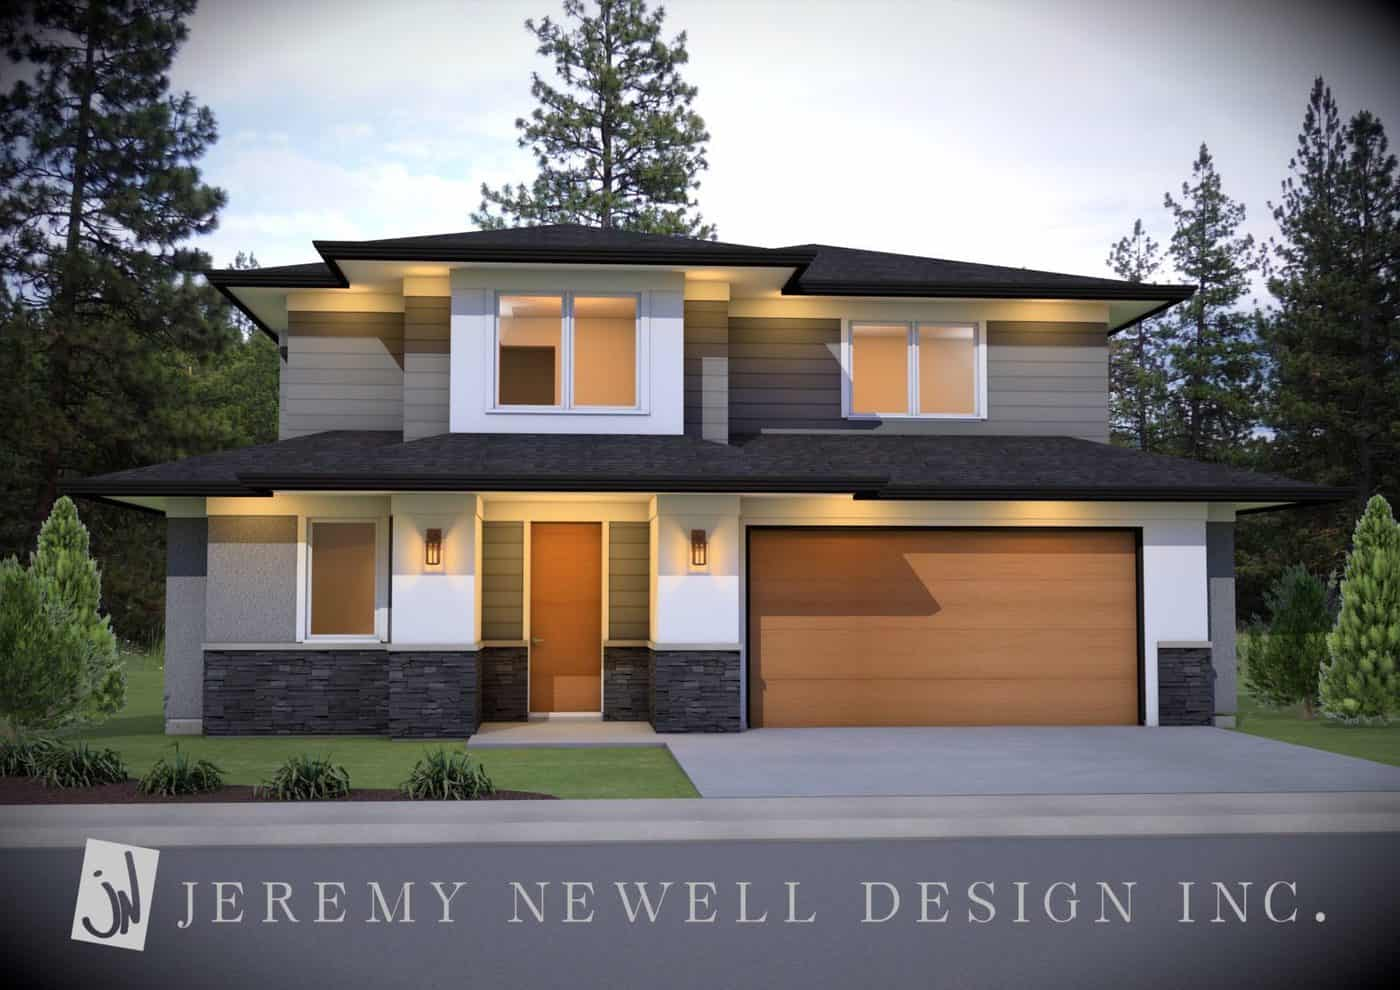 Okanagan modern 1 1 2 storey home by jeremy newell 6 for Small house design kelowna